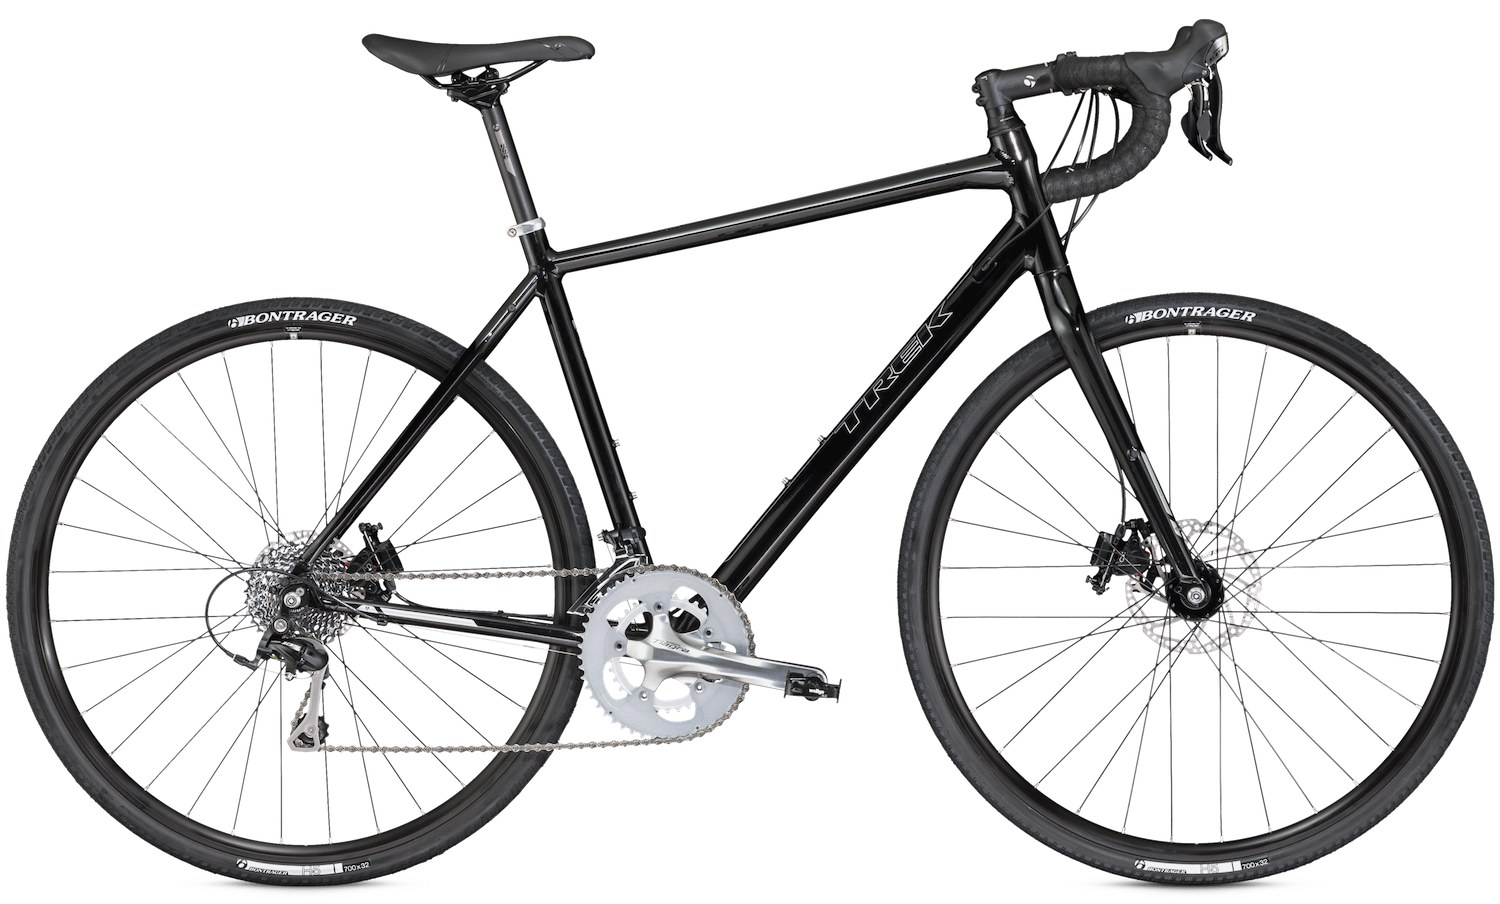 The New 2016 Trek 920 720 520 And Crossrip Touring Bikes Cyclingabout